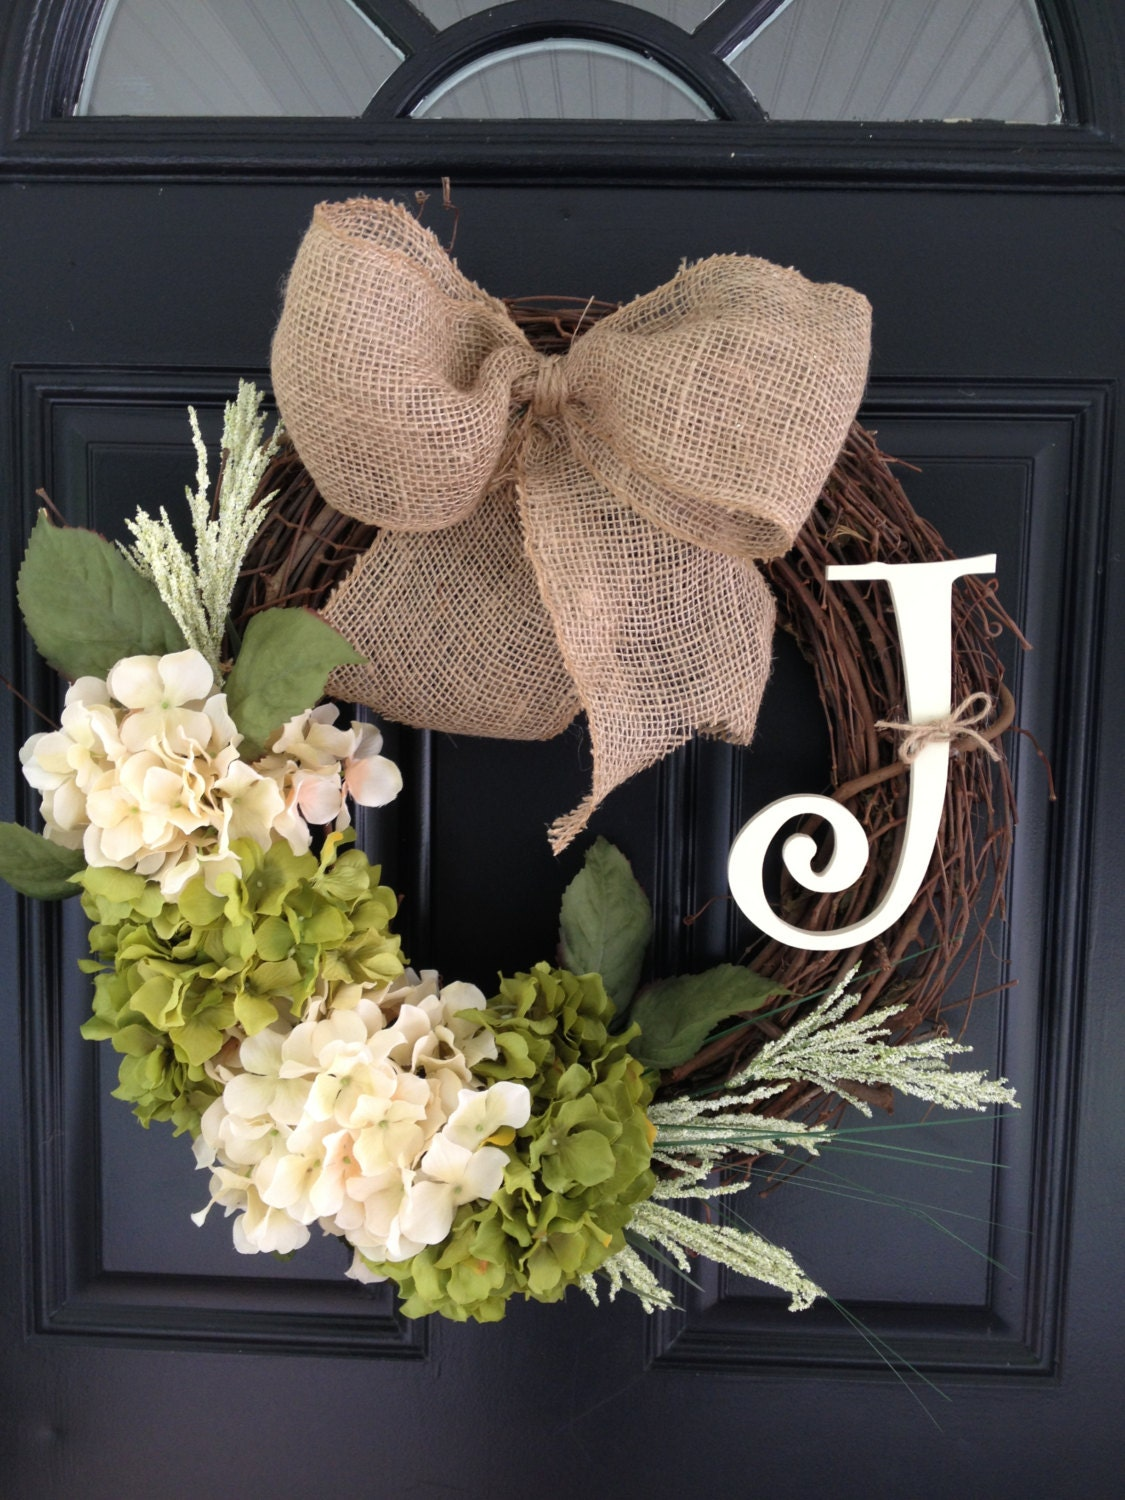 Handmade personalized initial grapevine wreath with burlap